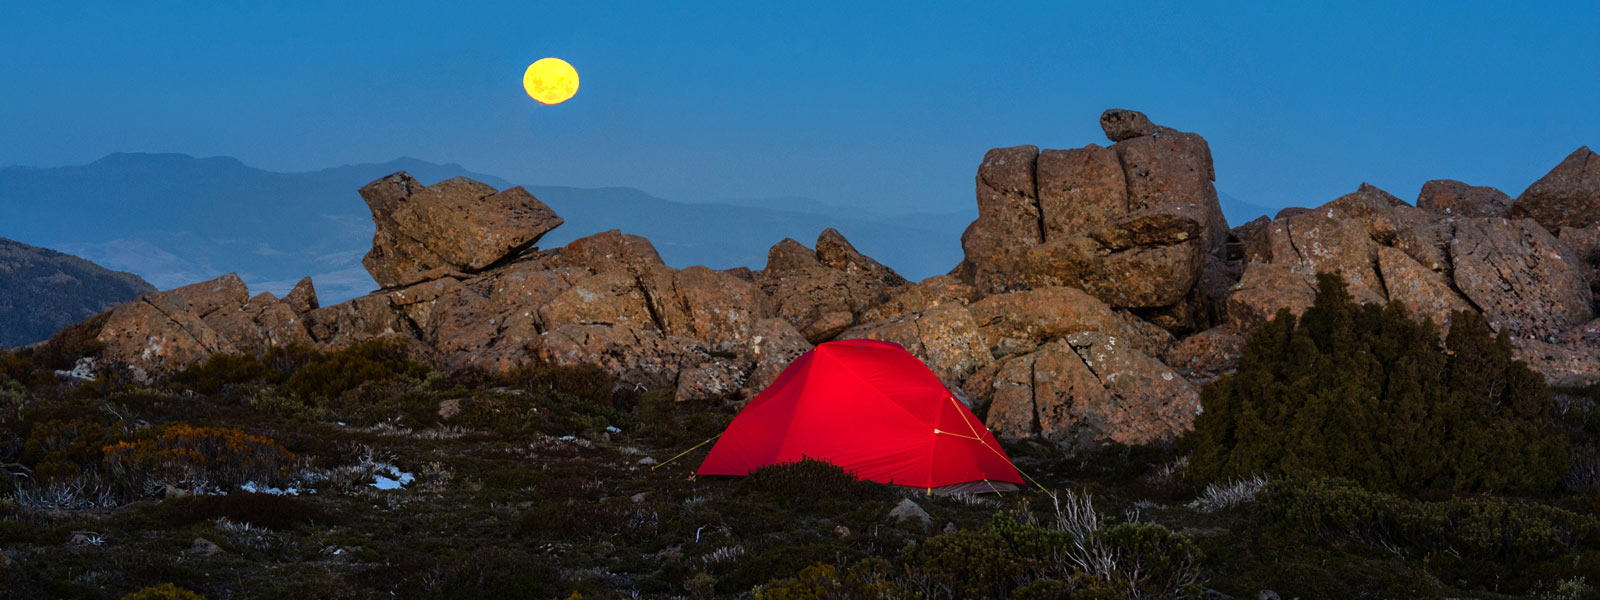 The Mont Moondance 1 Tent, Rodway Range, Tasmania. By Geoff Murray